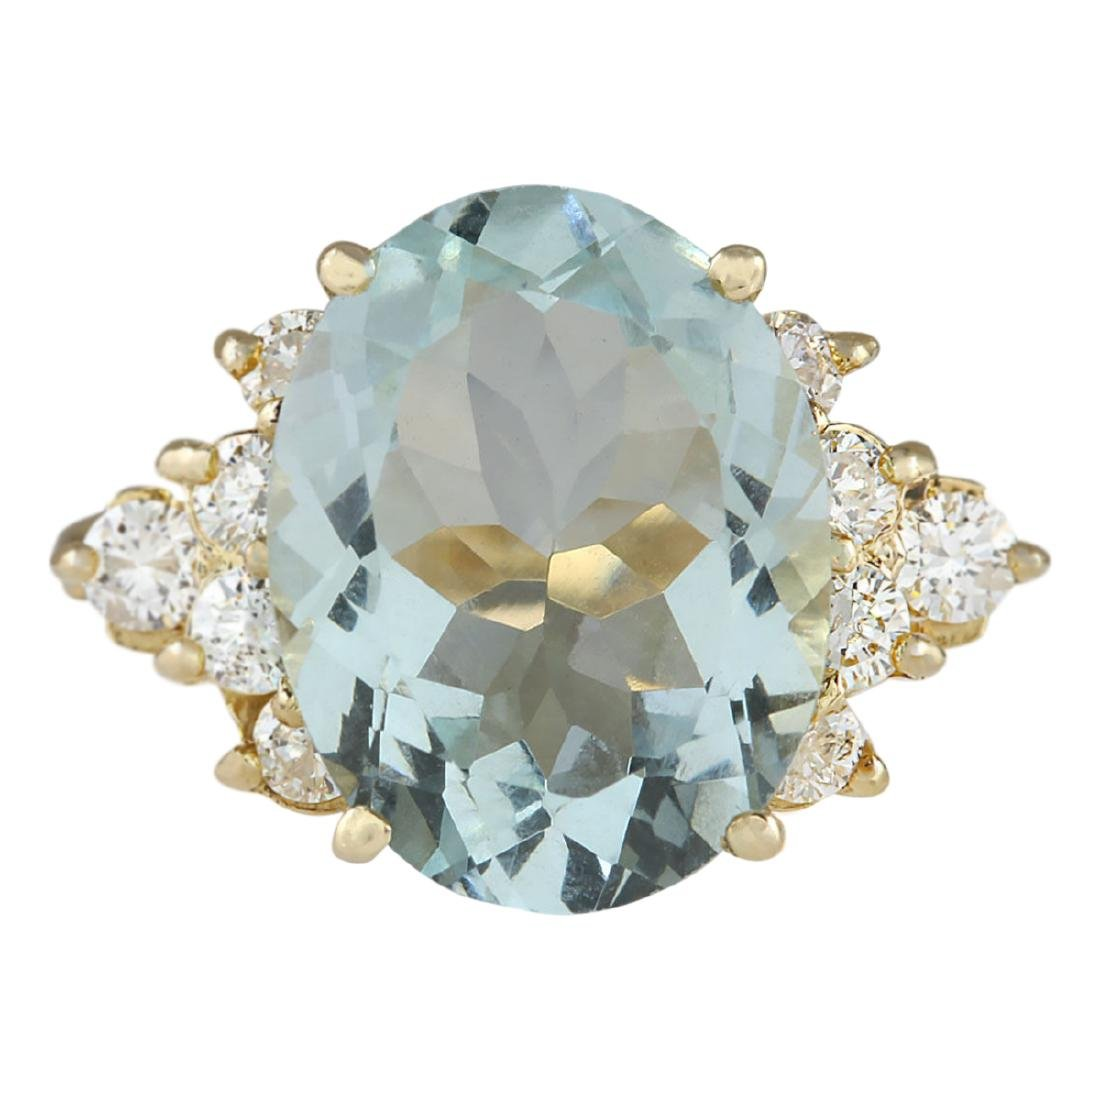 4.75 CTW Natural Aquamarine And Diamond Ring In 18K